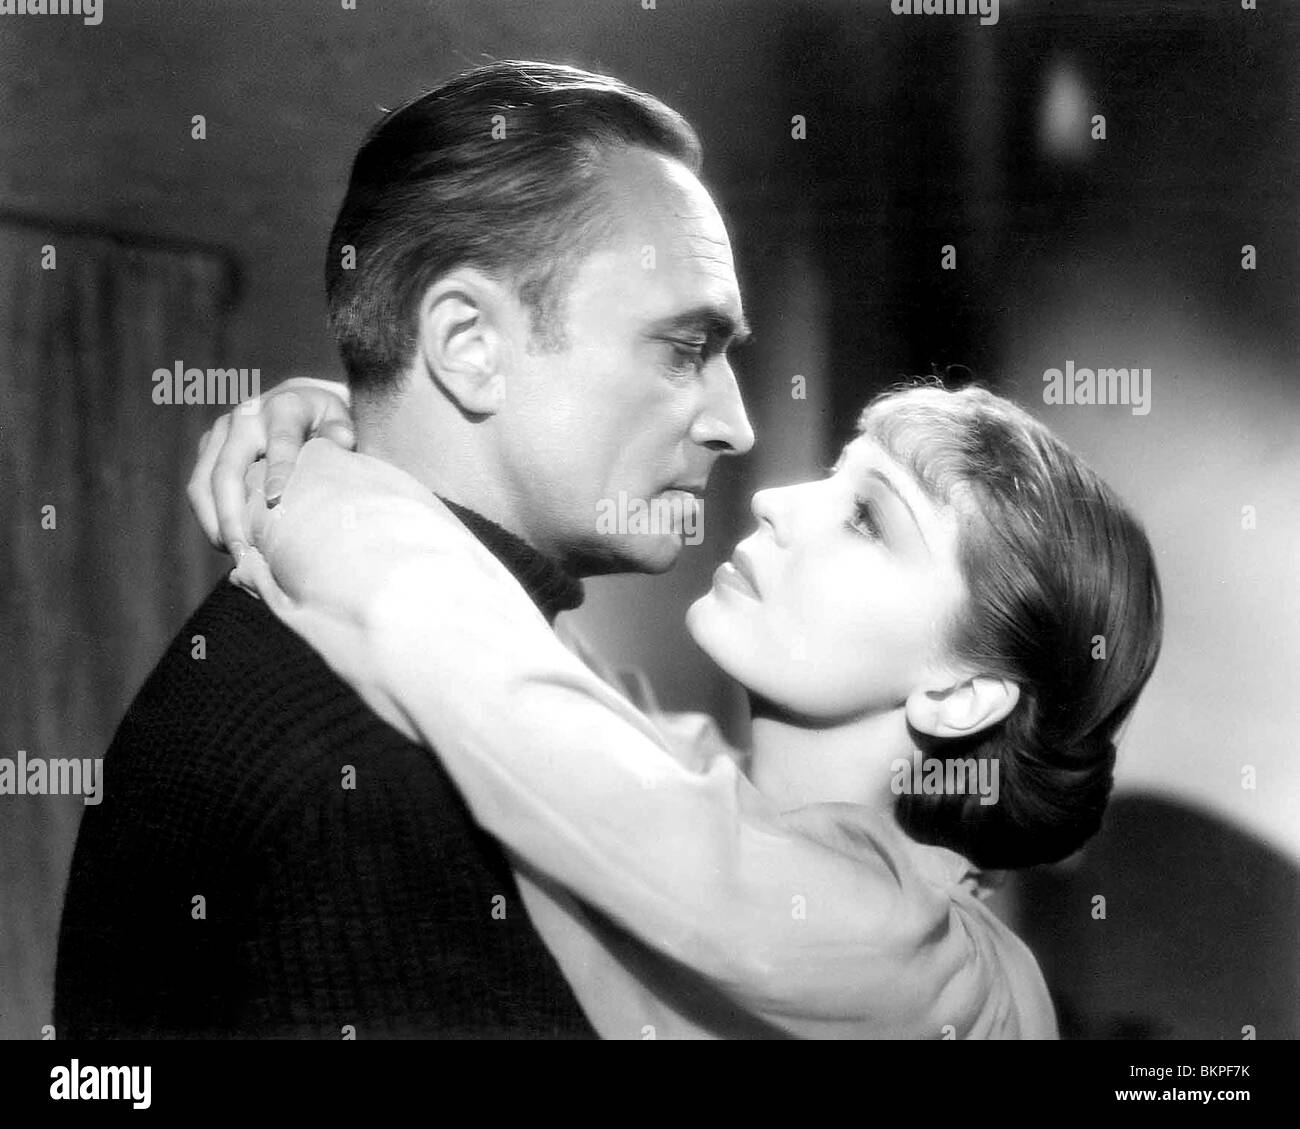 THE SPY IN BLACK (1939) CONRAD VEIDT, VALERIE HOBSON, MICHAEL POWELL (DIR) SPYB 002 - Stock Image